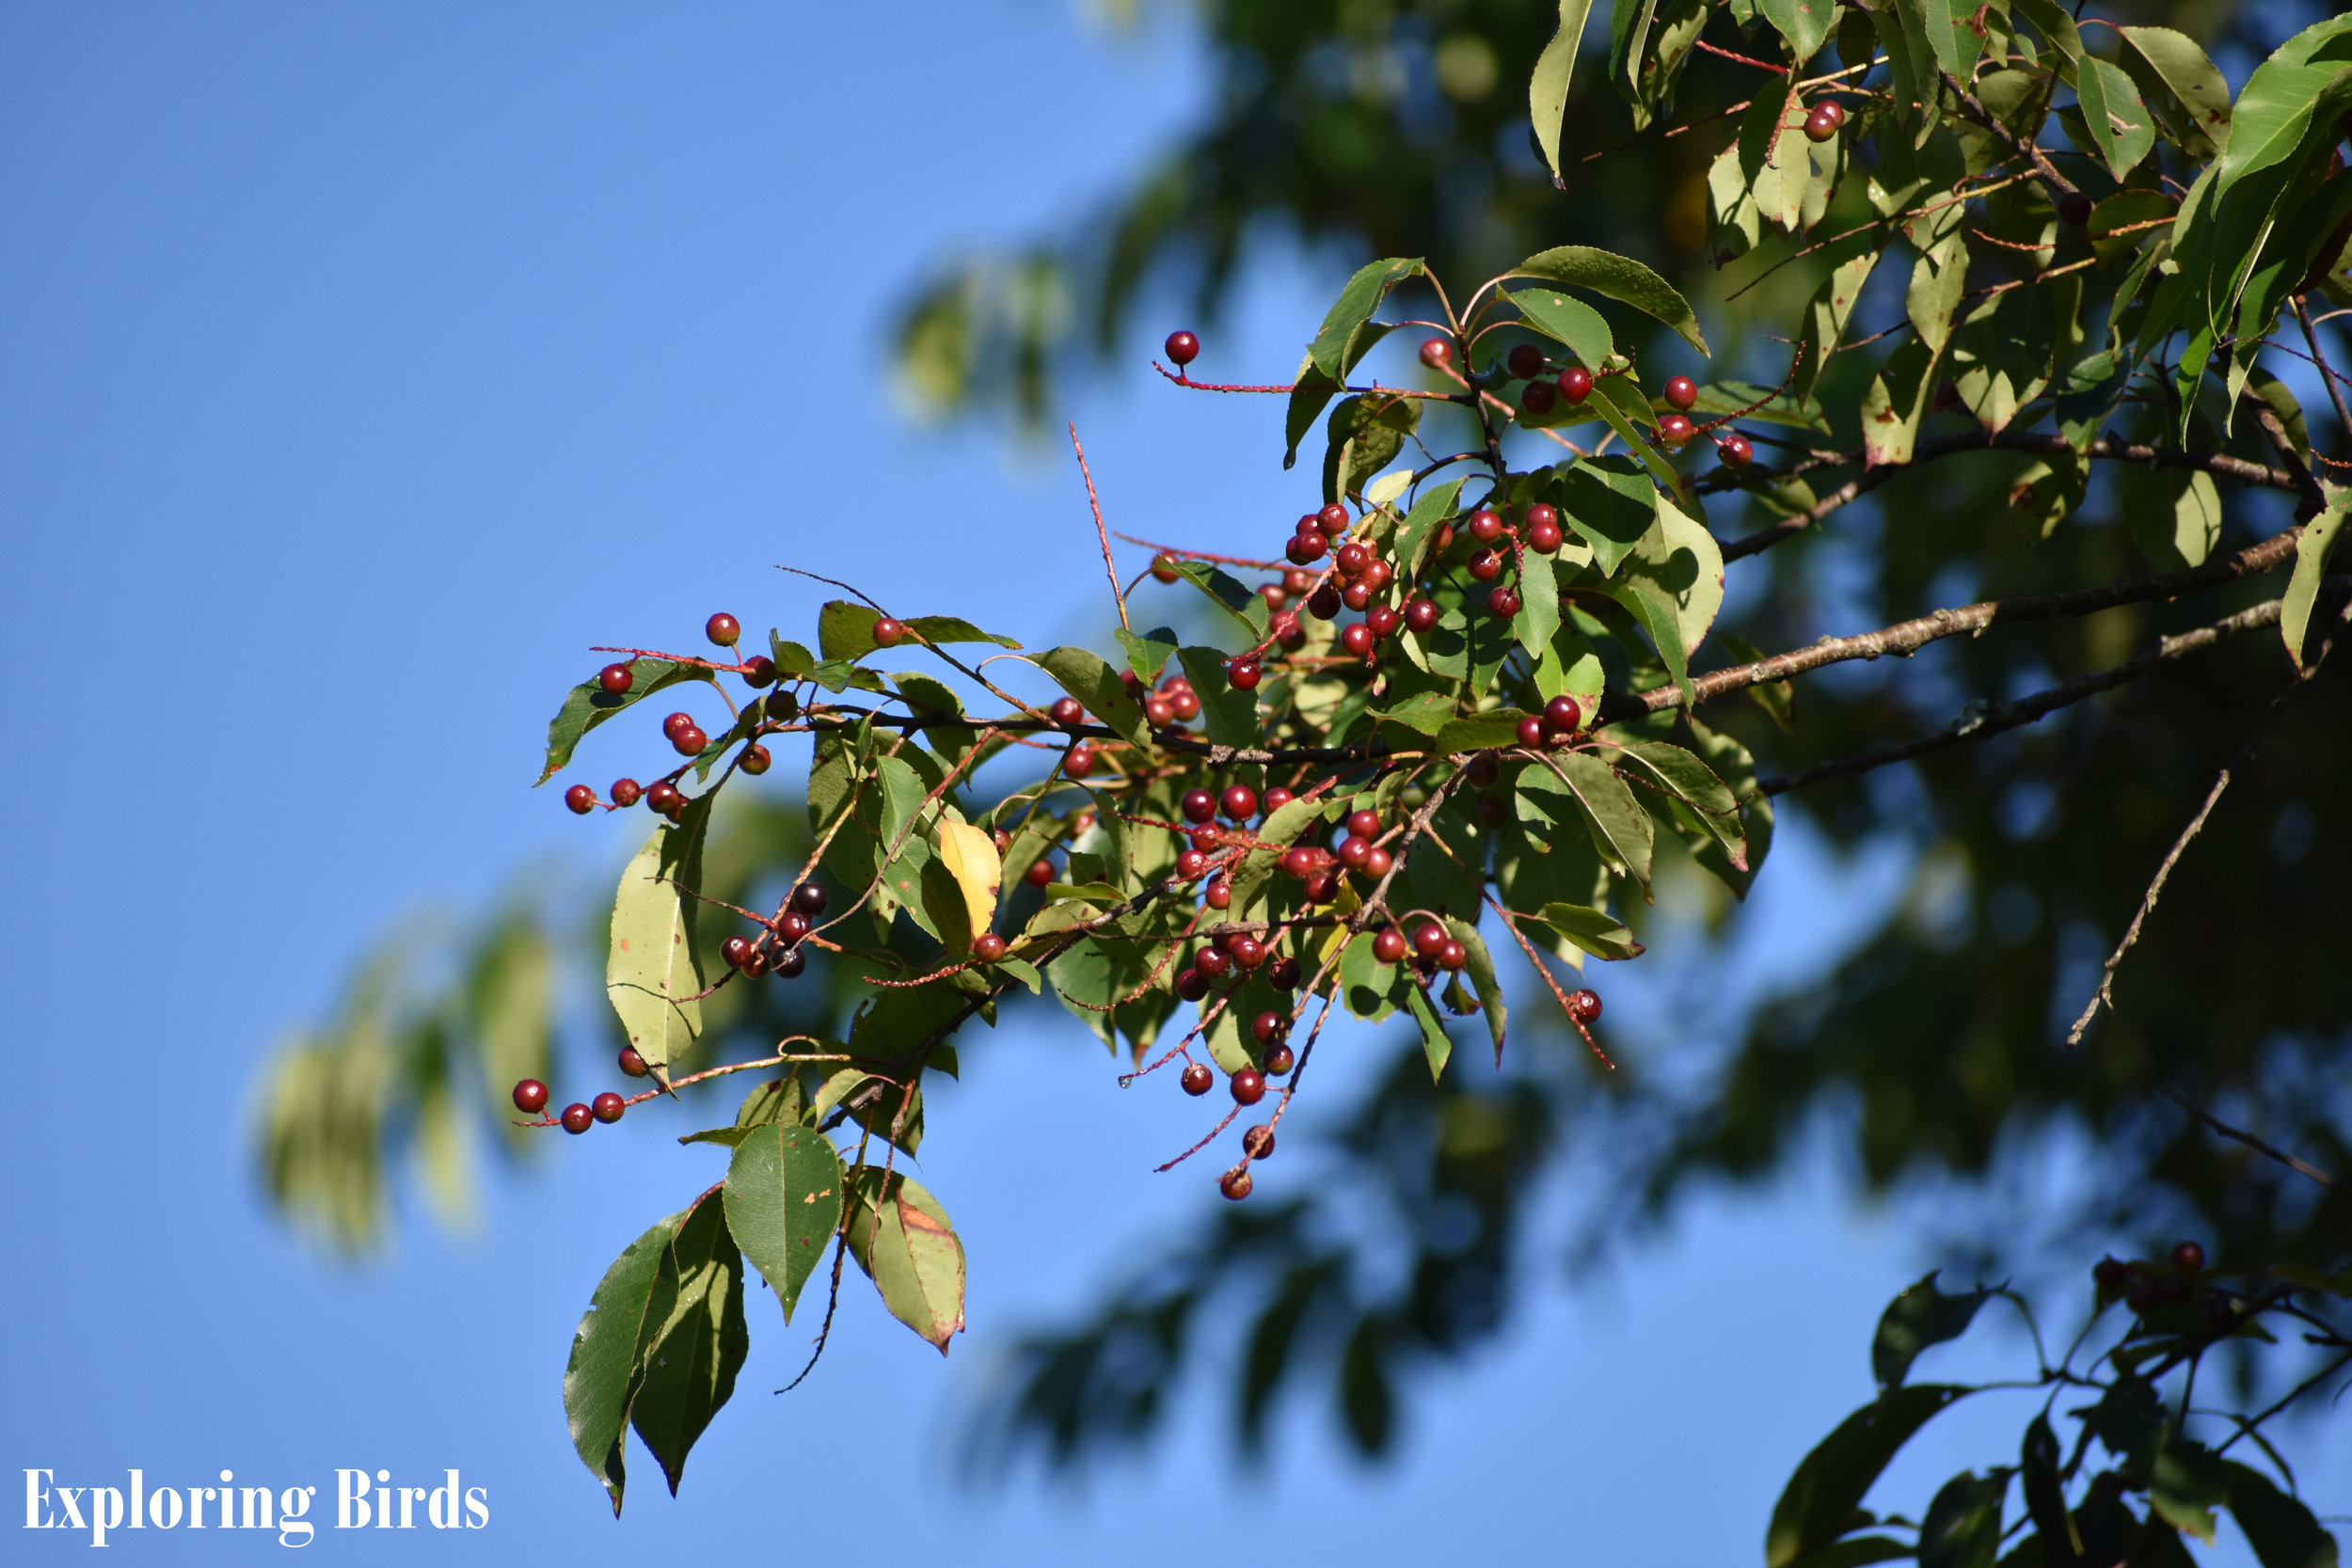 Wild Black Cherry is a tree that attracts birds